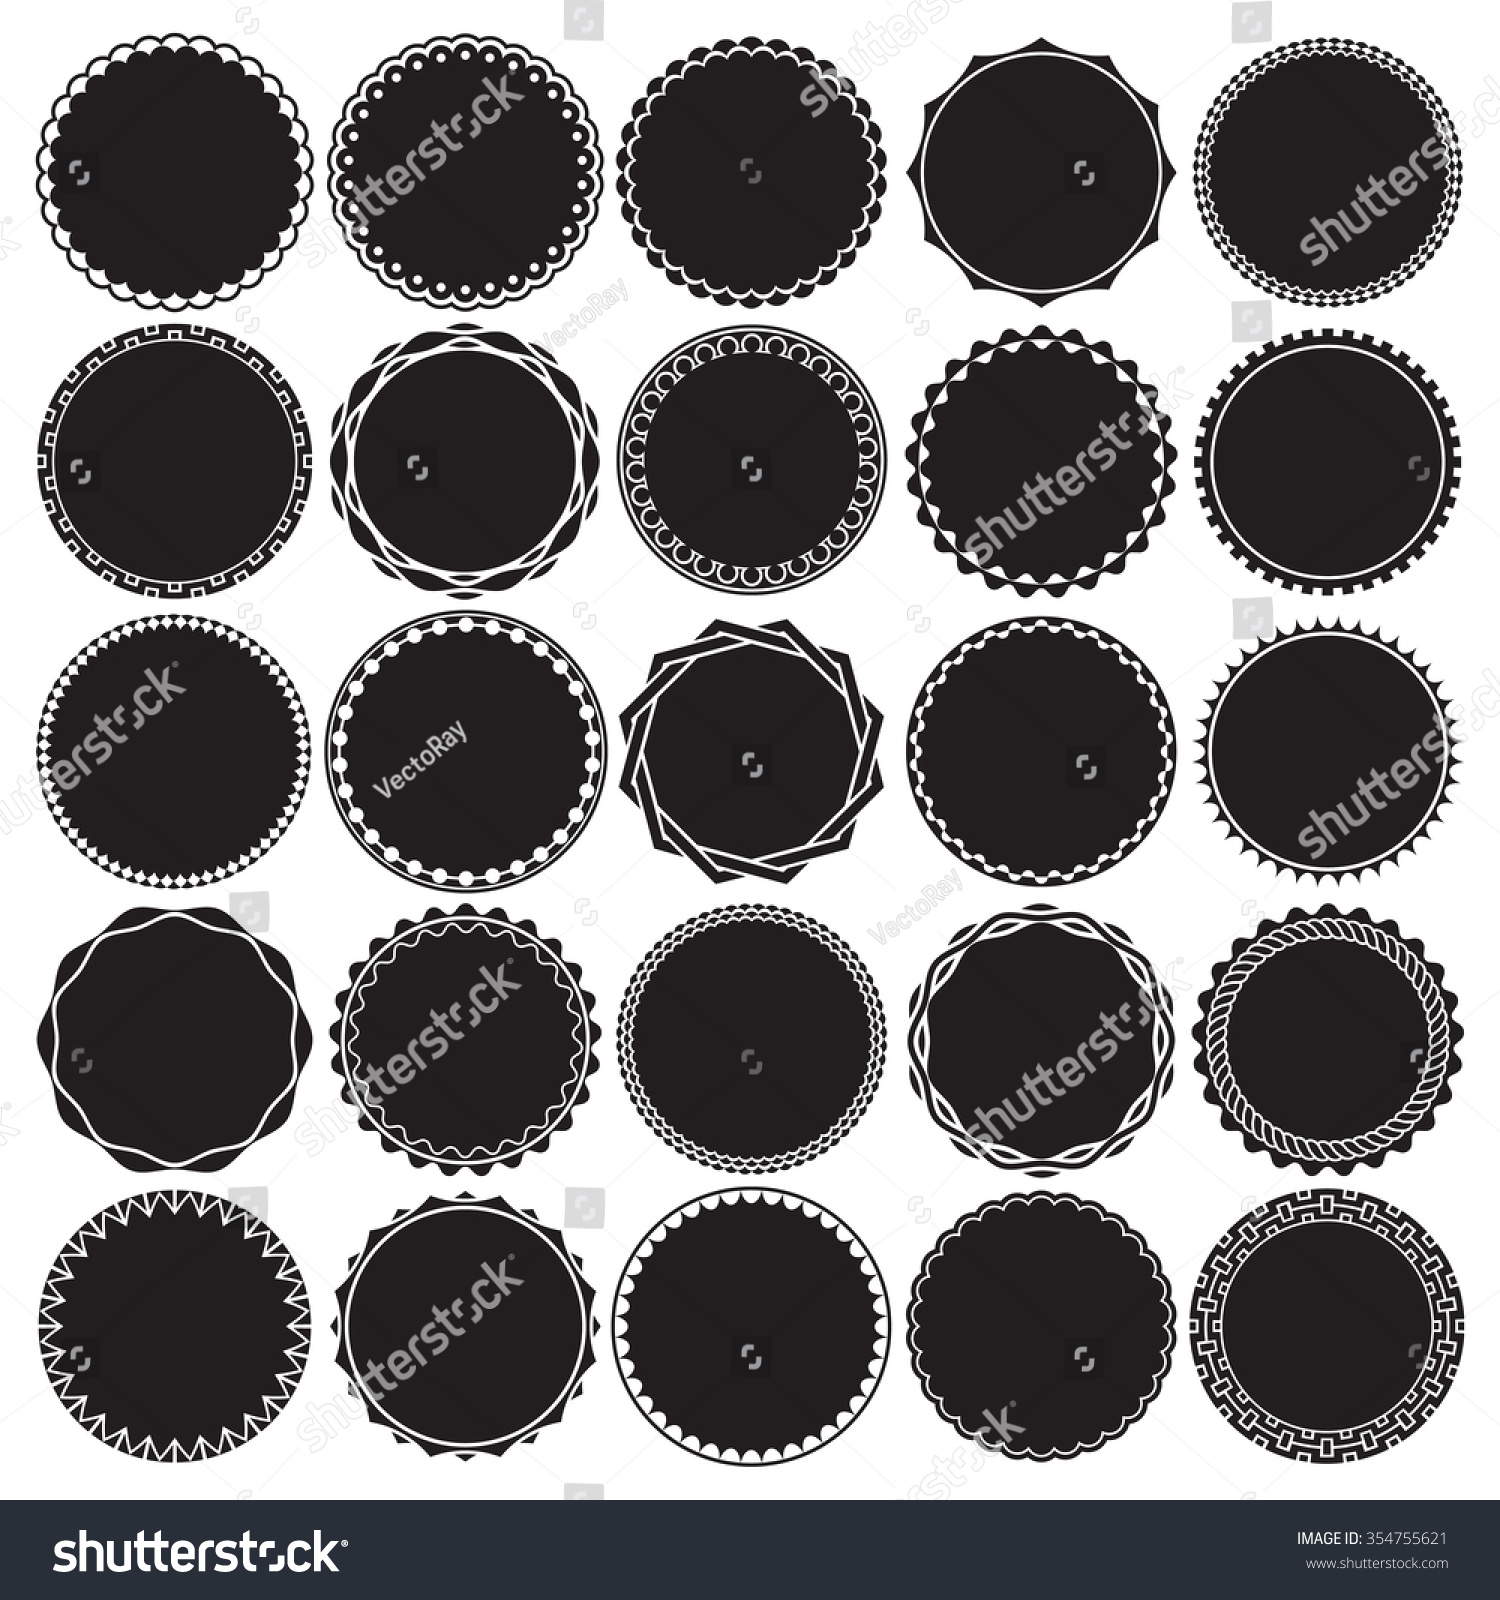 Stock Vector Collection Of Round Decorative Border Frames With Solid